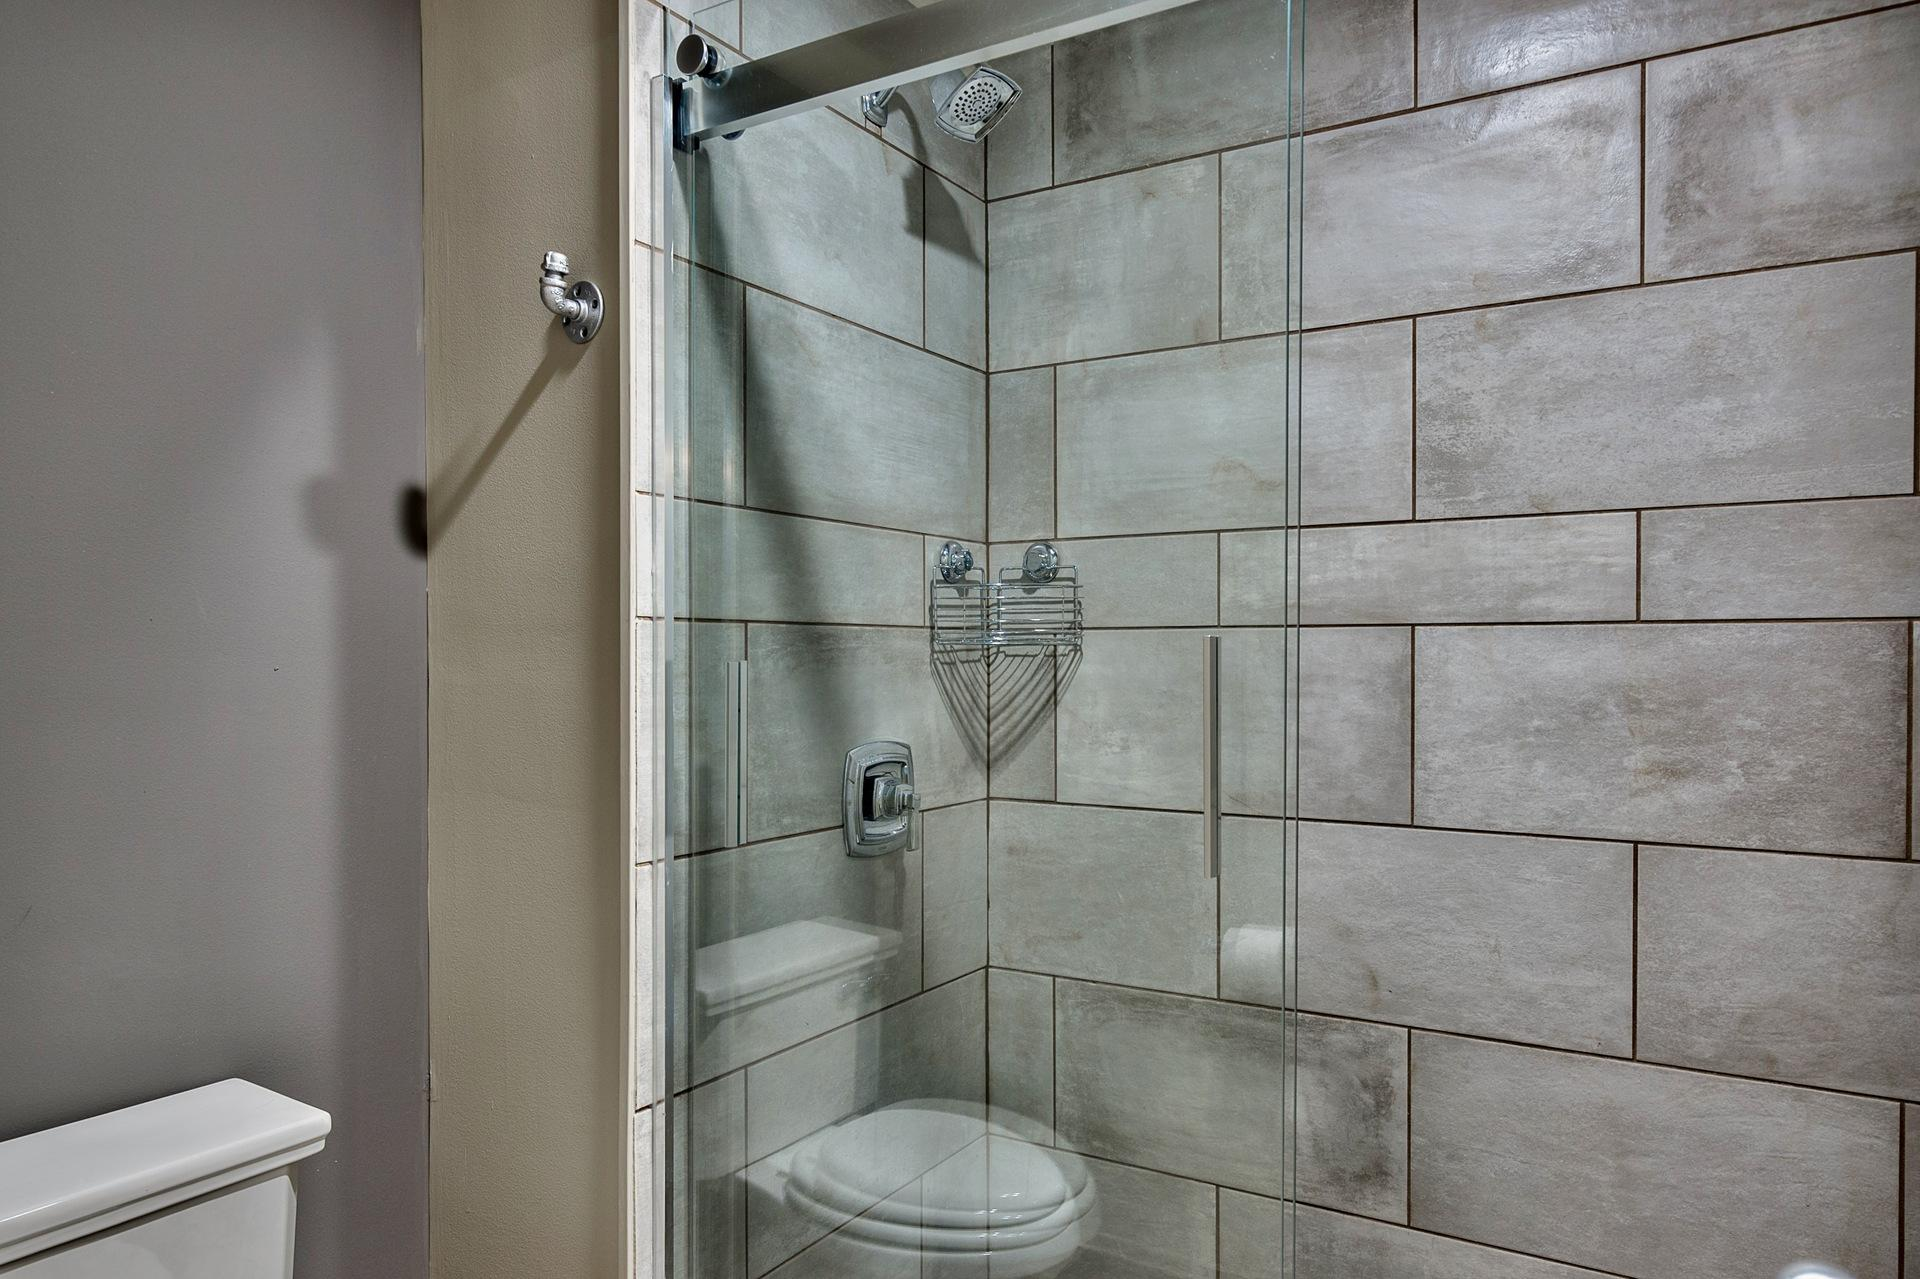 Guest Bathroom, tiled shower